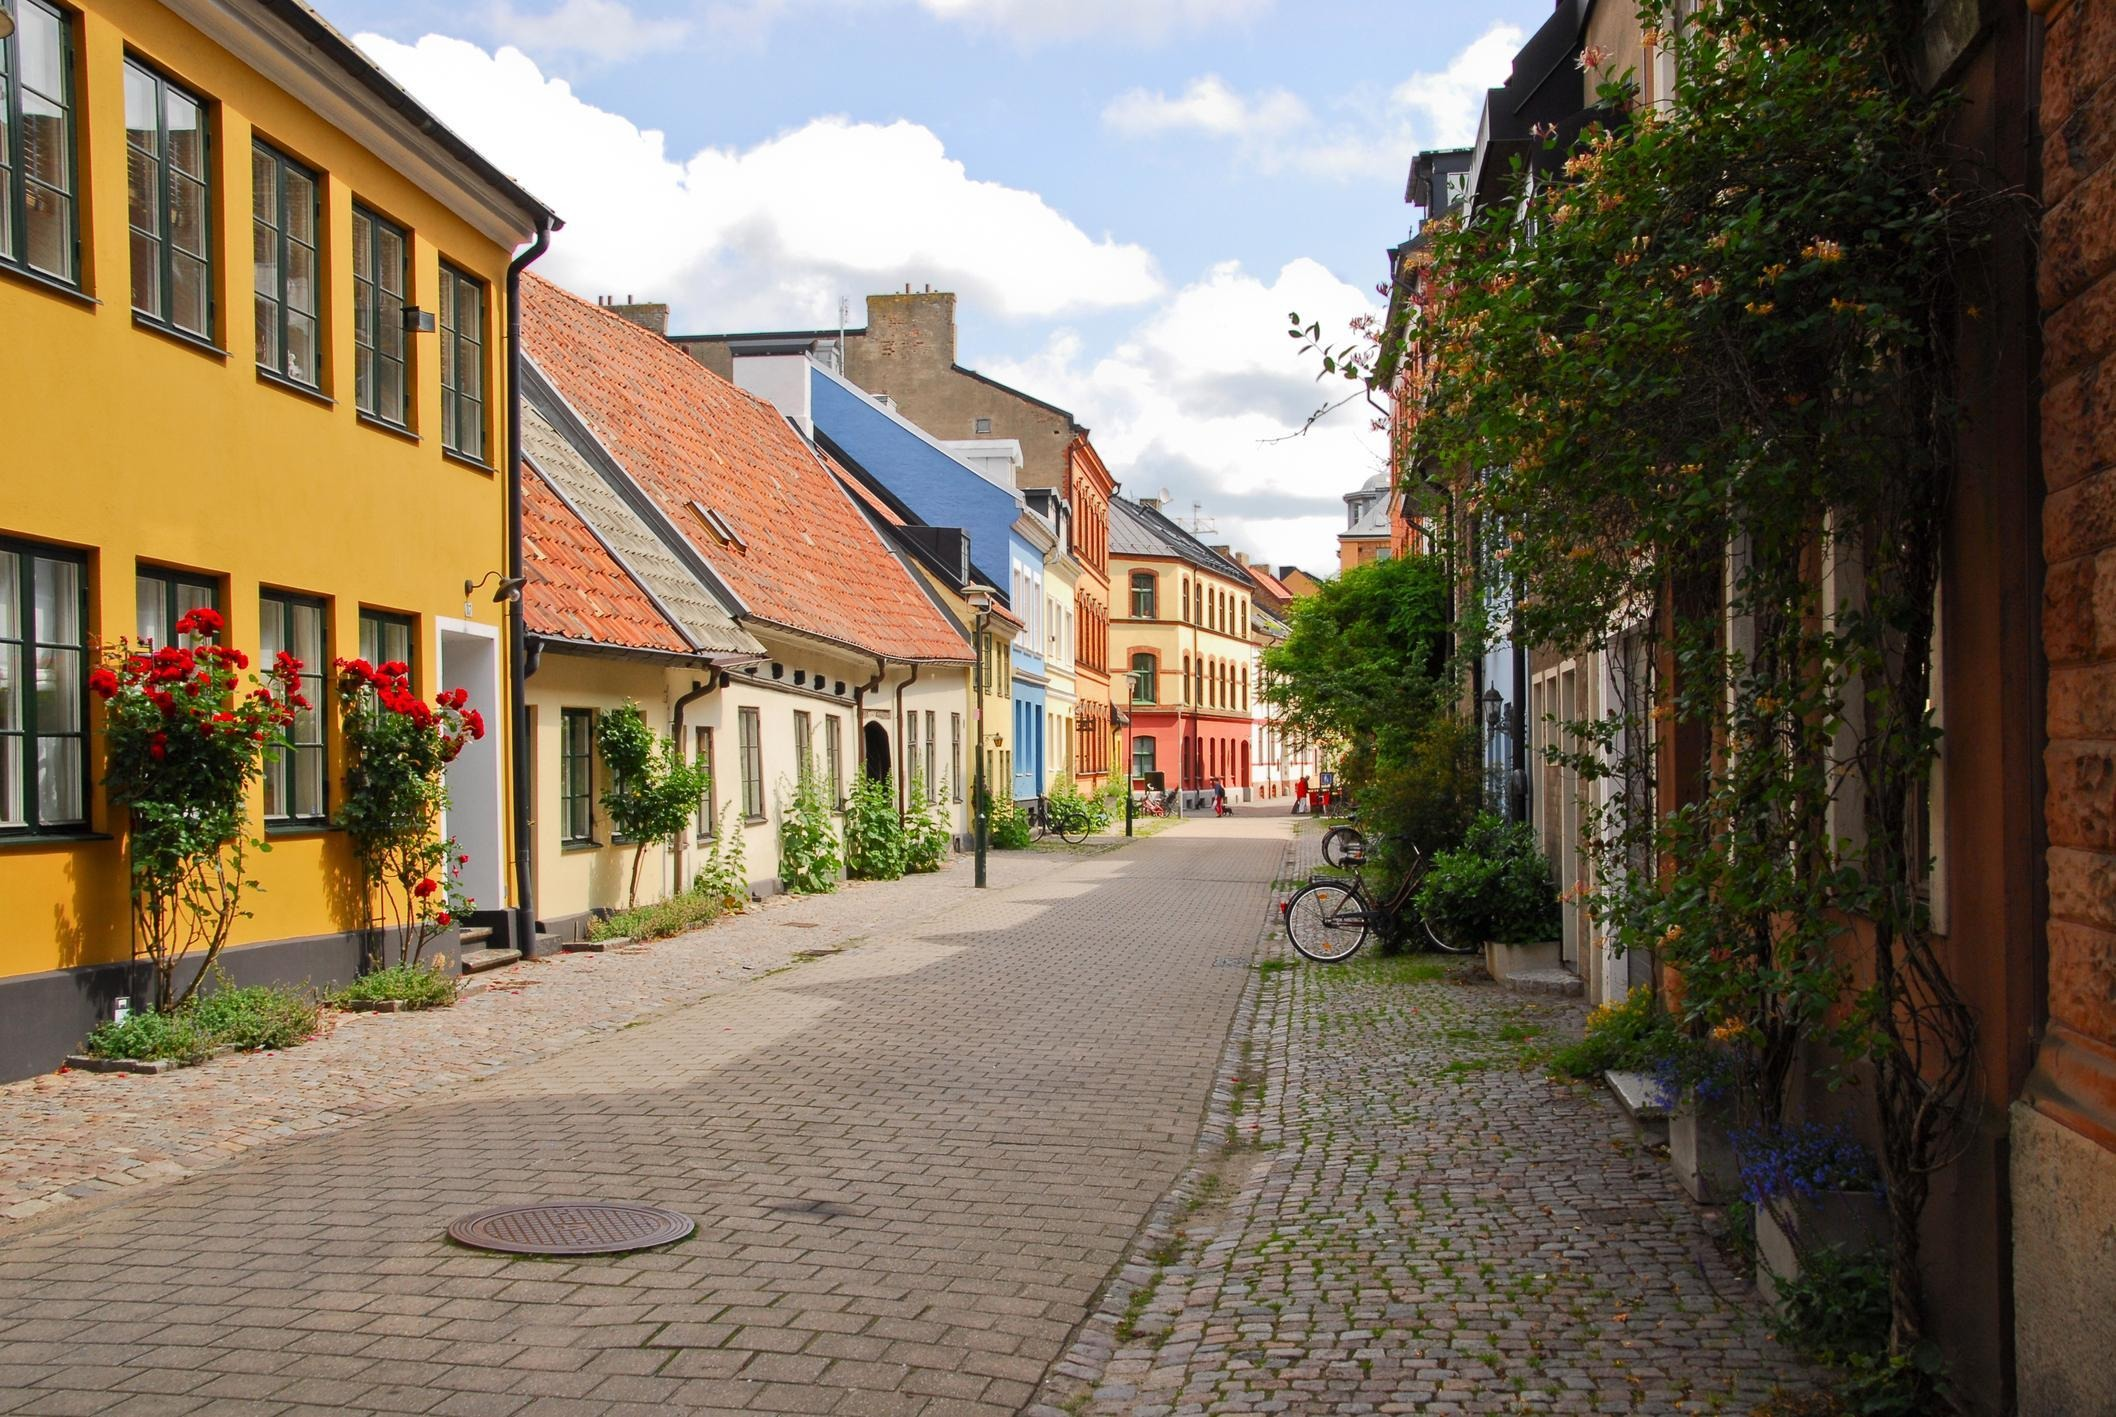 How to Spend 1 Day in Malmö